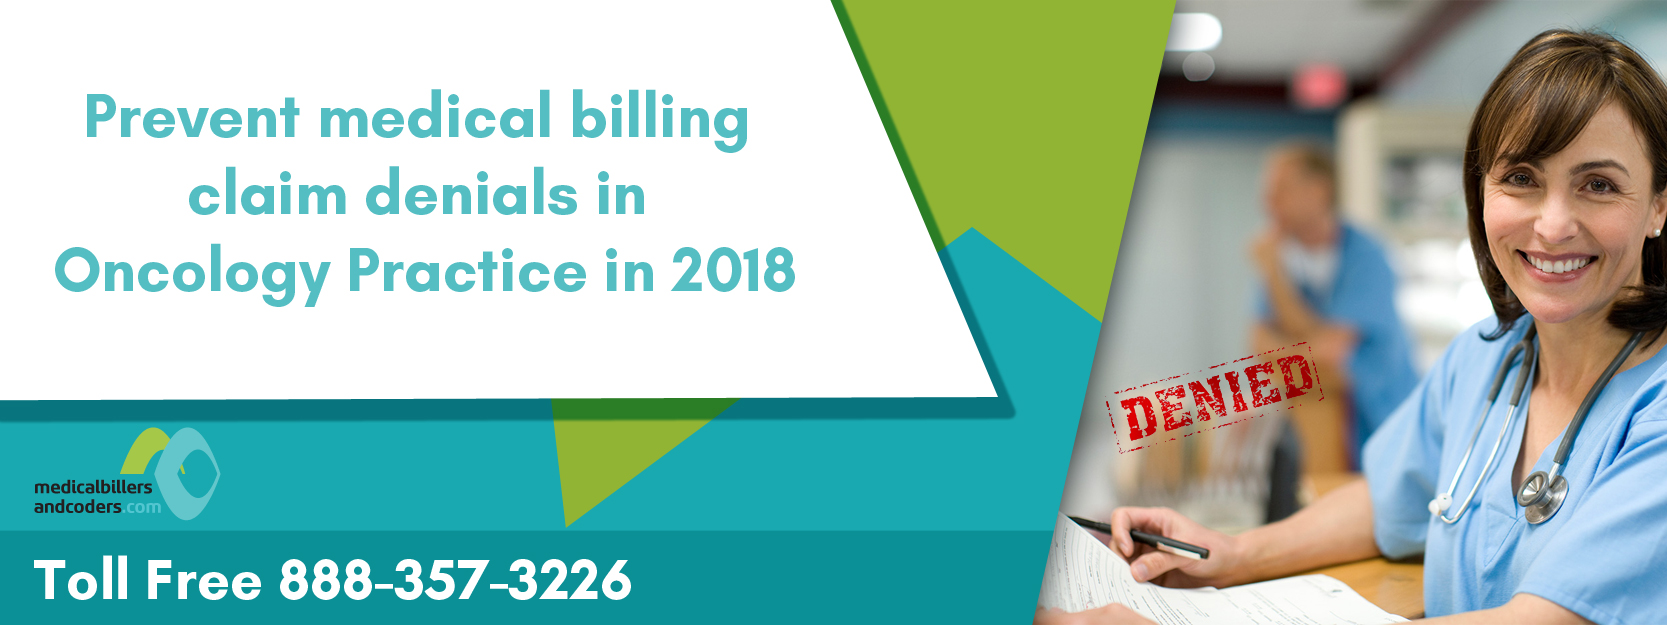 blog-prevent-medical-billing-claim-denials-in-oncology-practice-in-2018